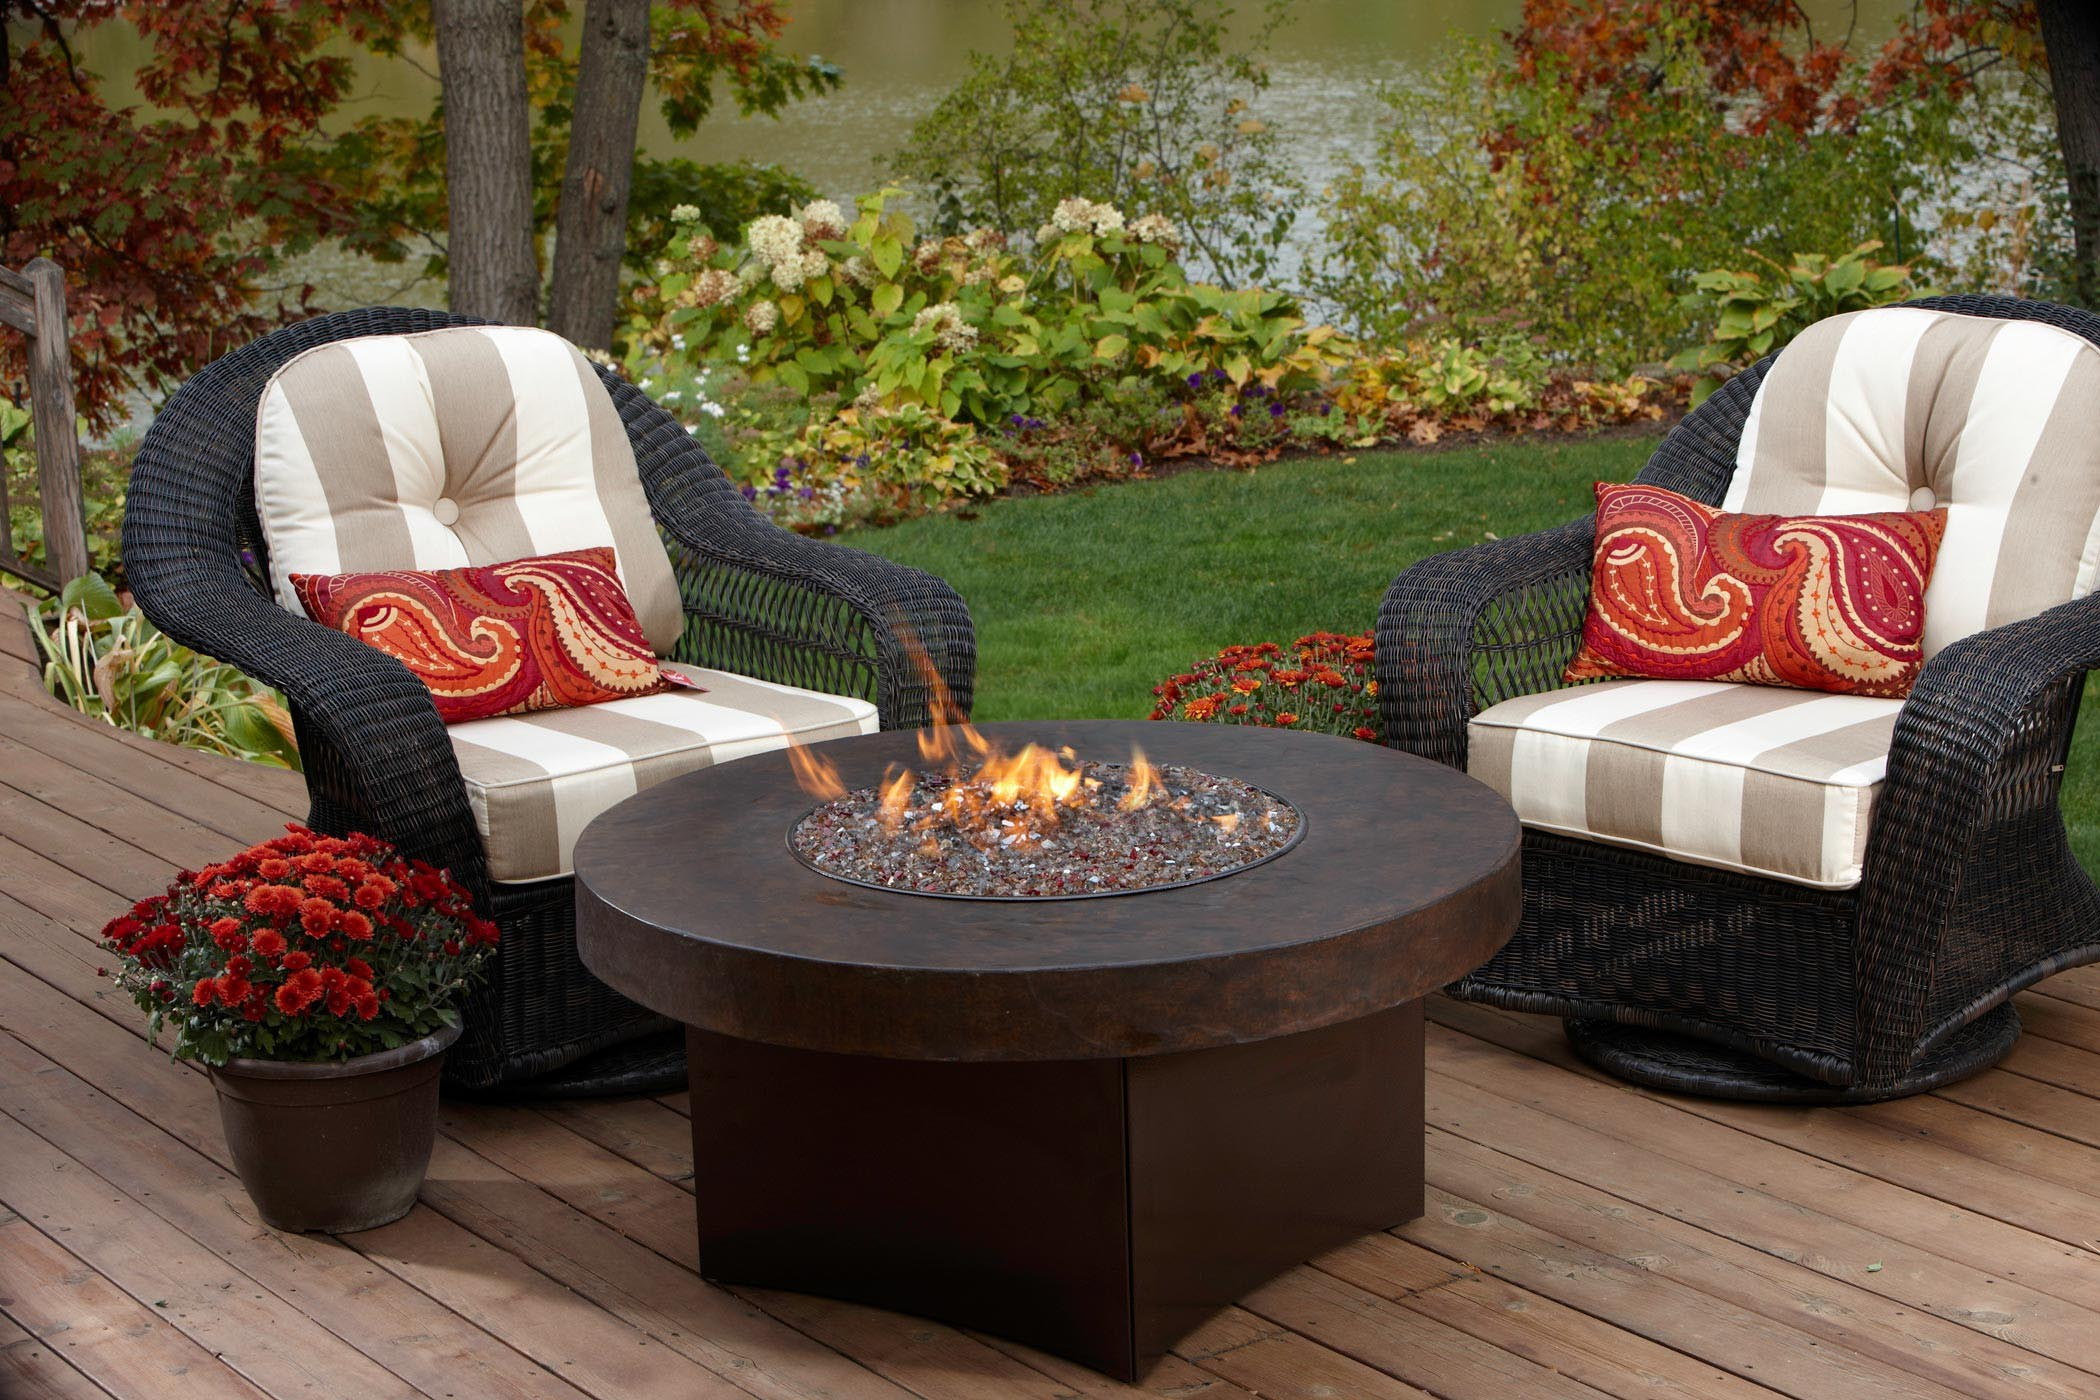 Patio Coffee Table With Fire Pit